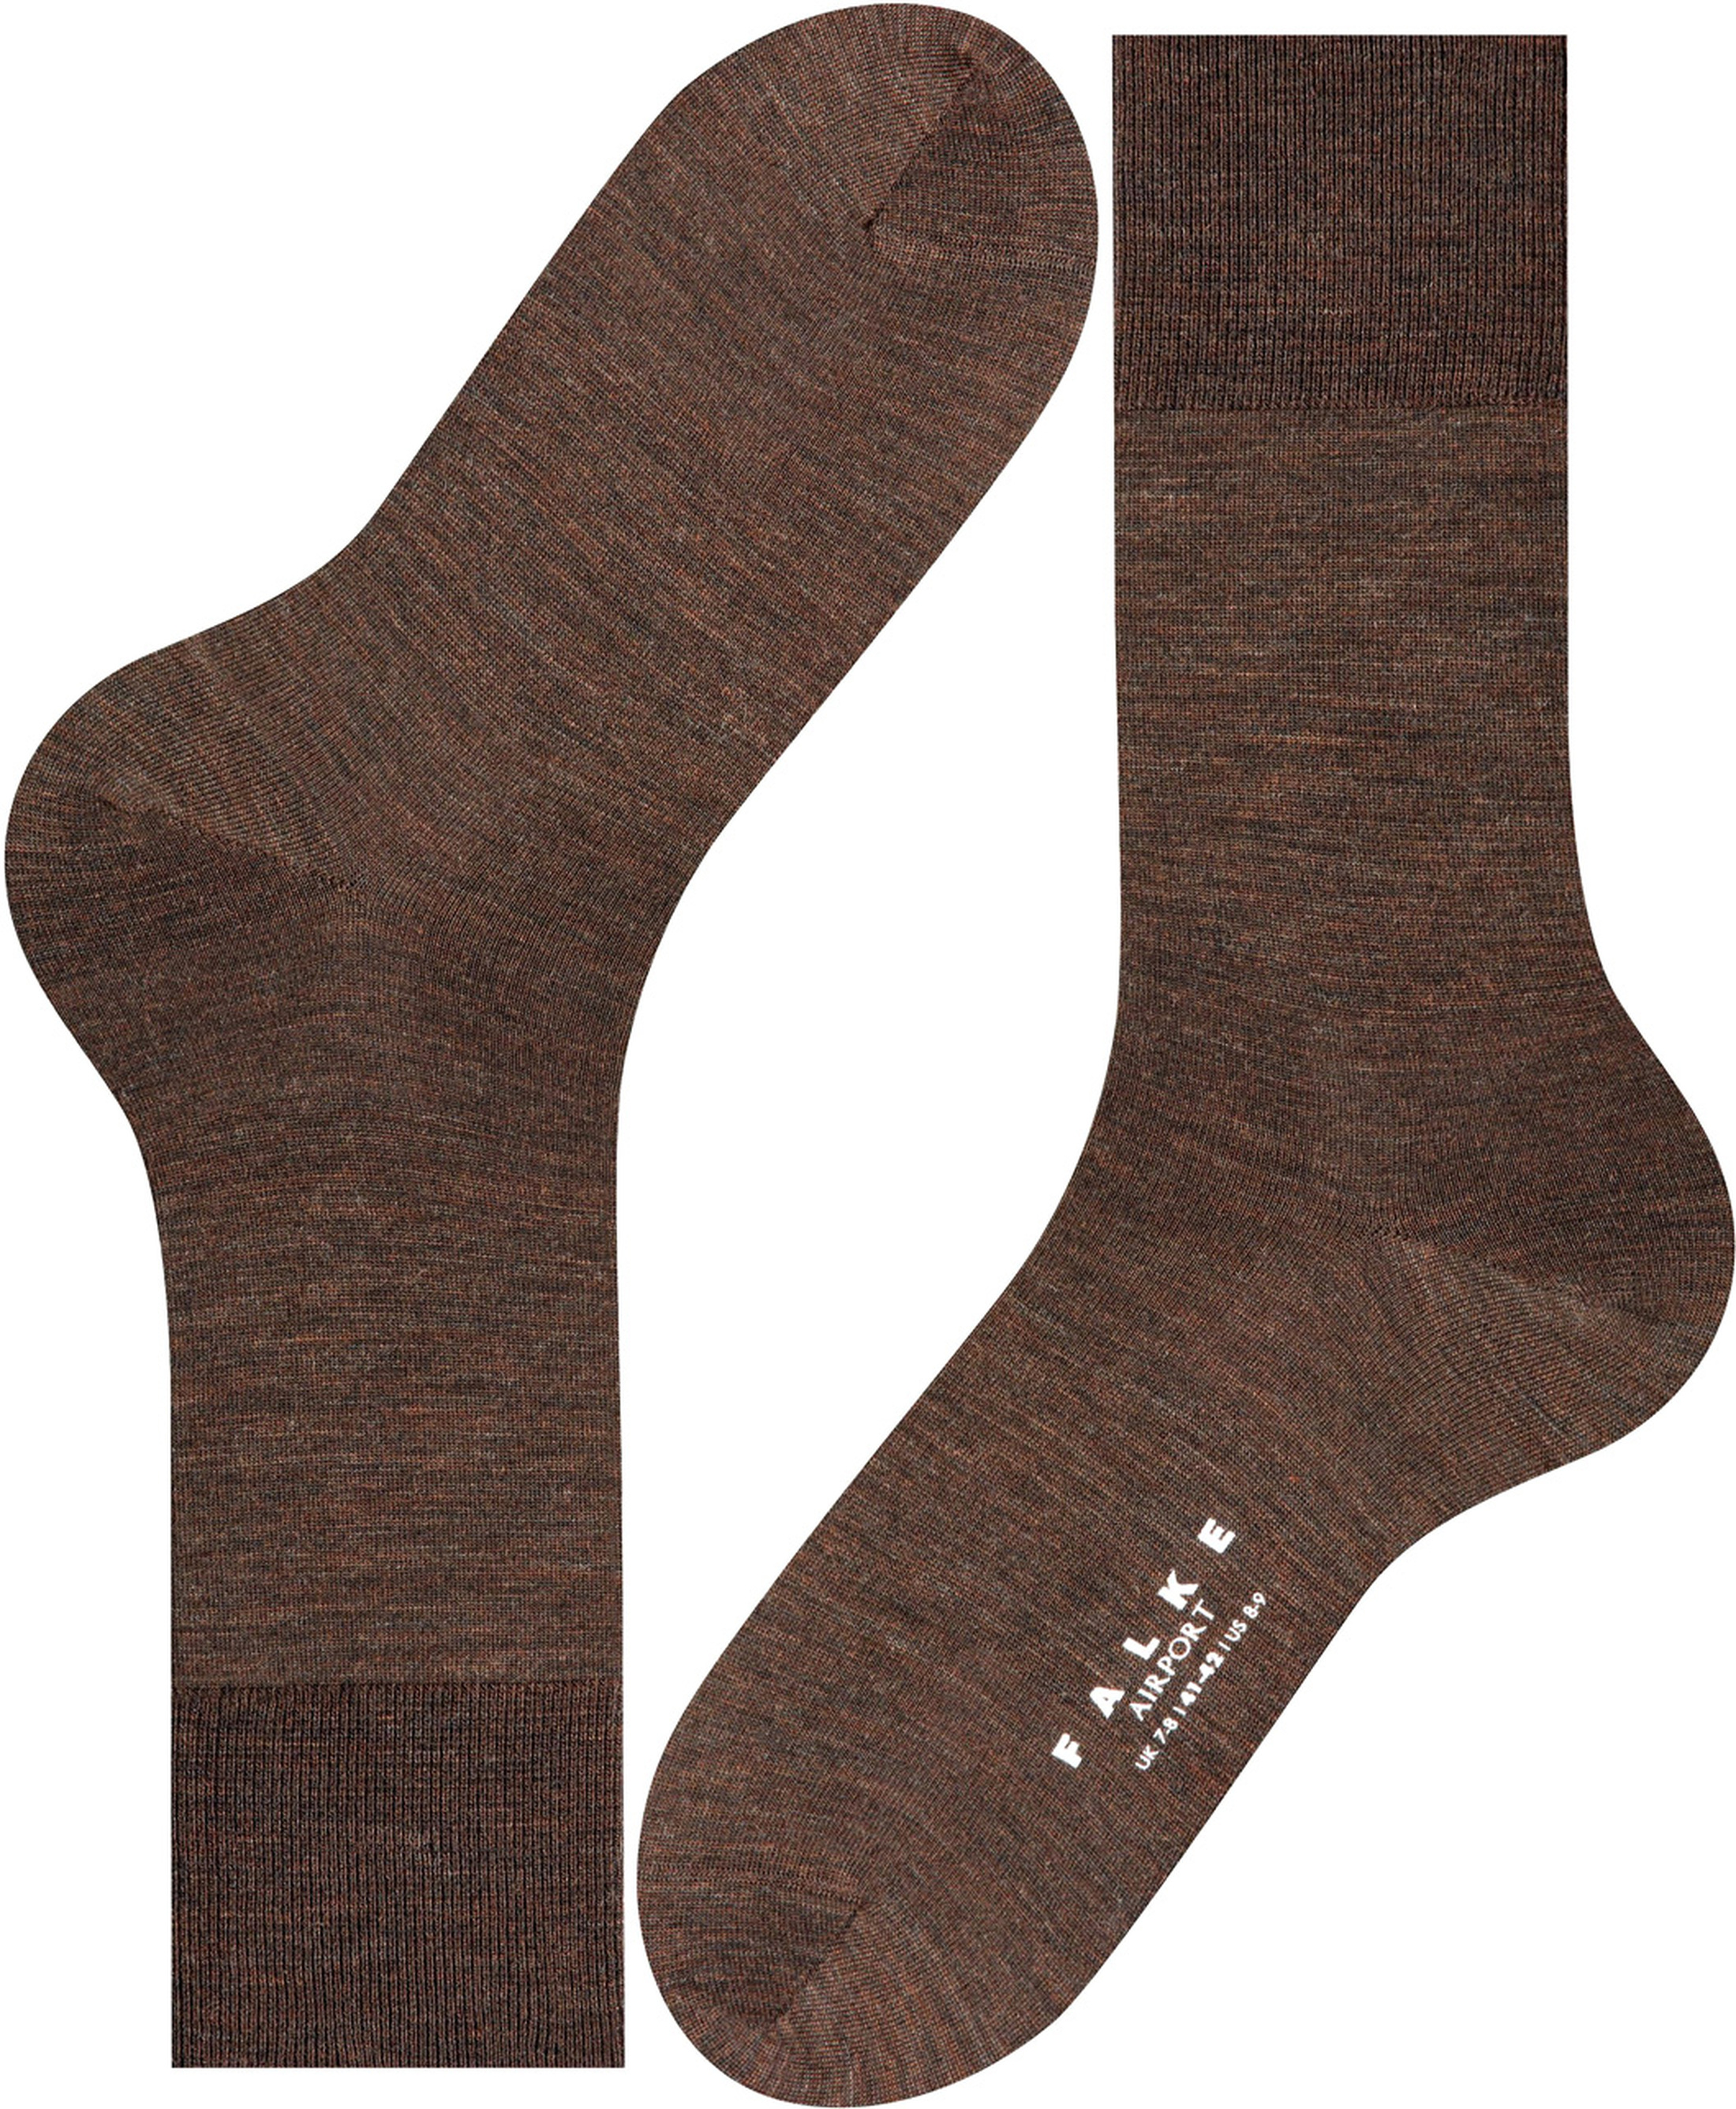 Falke Airport Socks Brown 5450